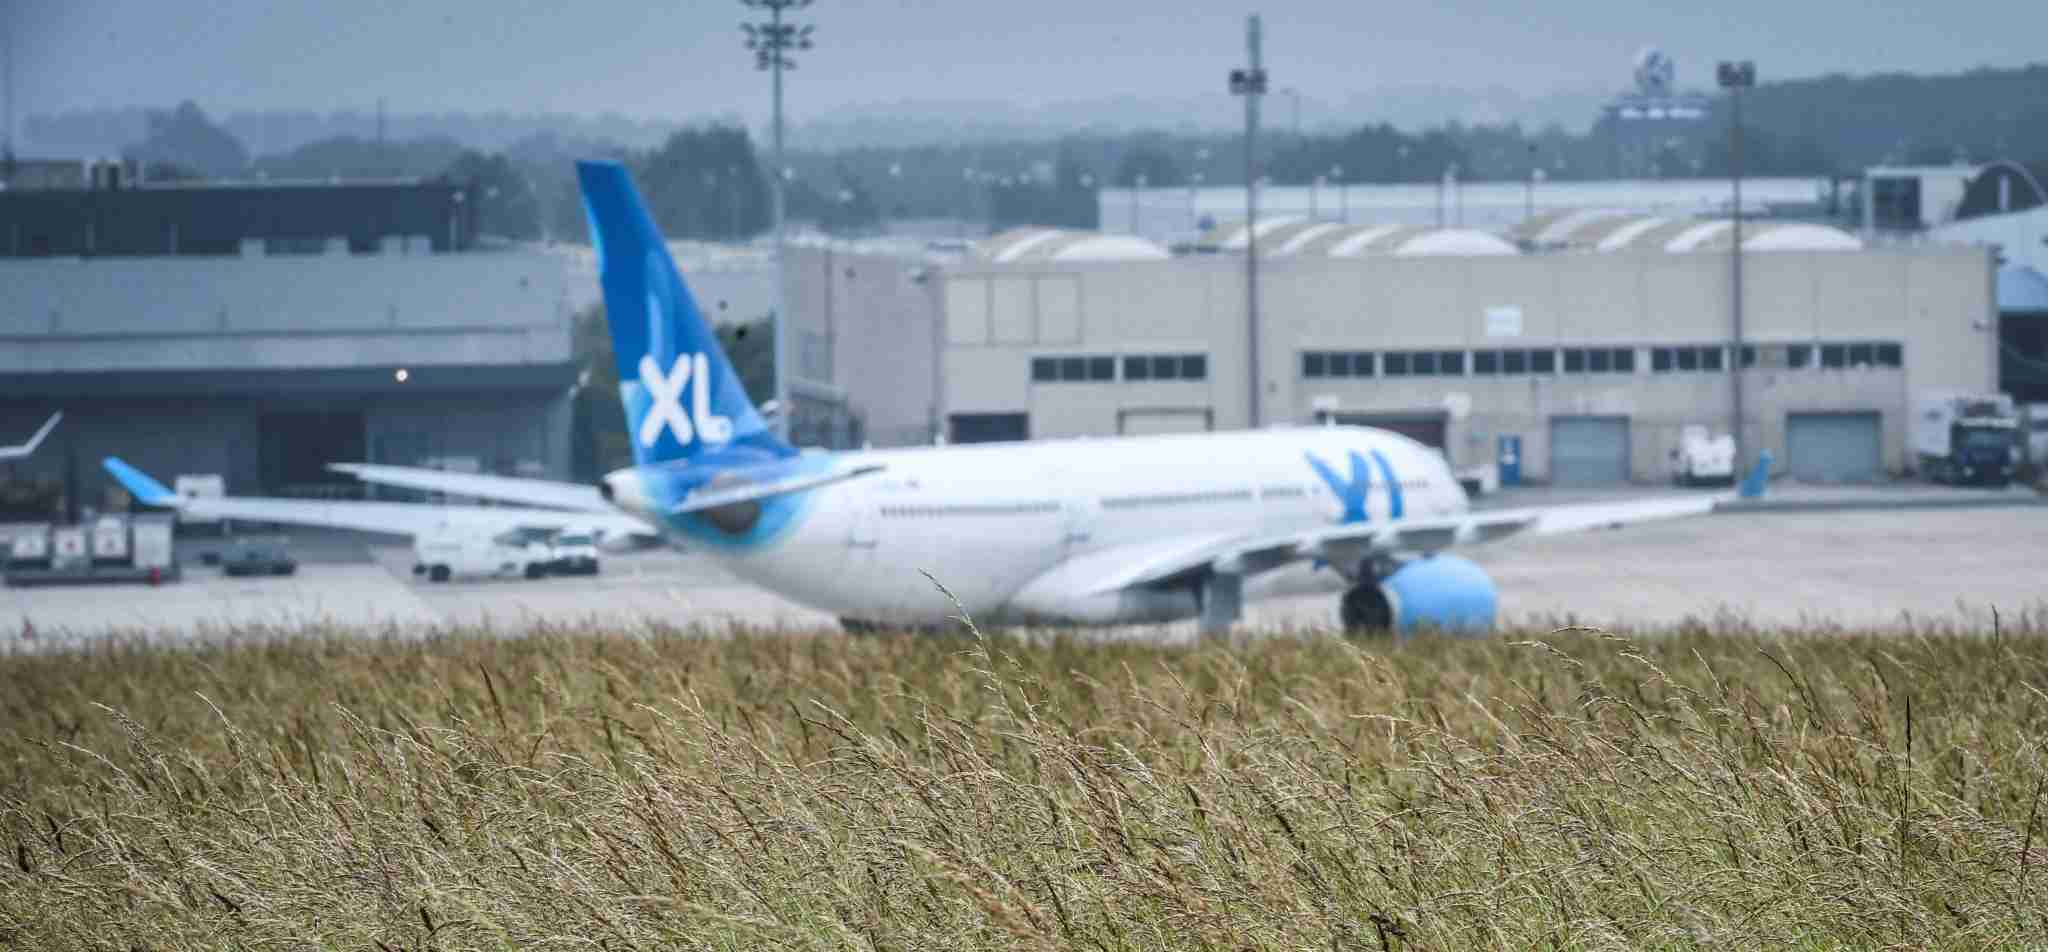 An XL Airways is seen from a distance at Paris Charles de Gualle Airport. (Photo credit Stephane de Sakutin / AFP/Getty Images)